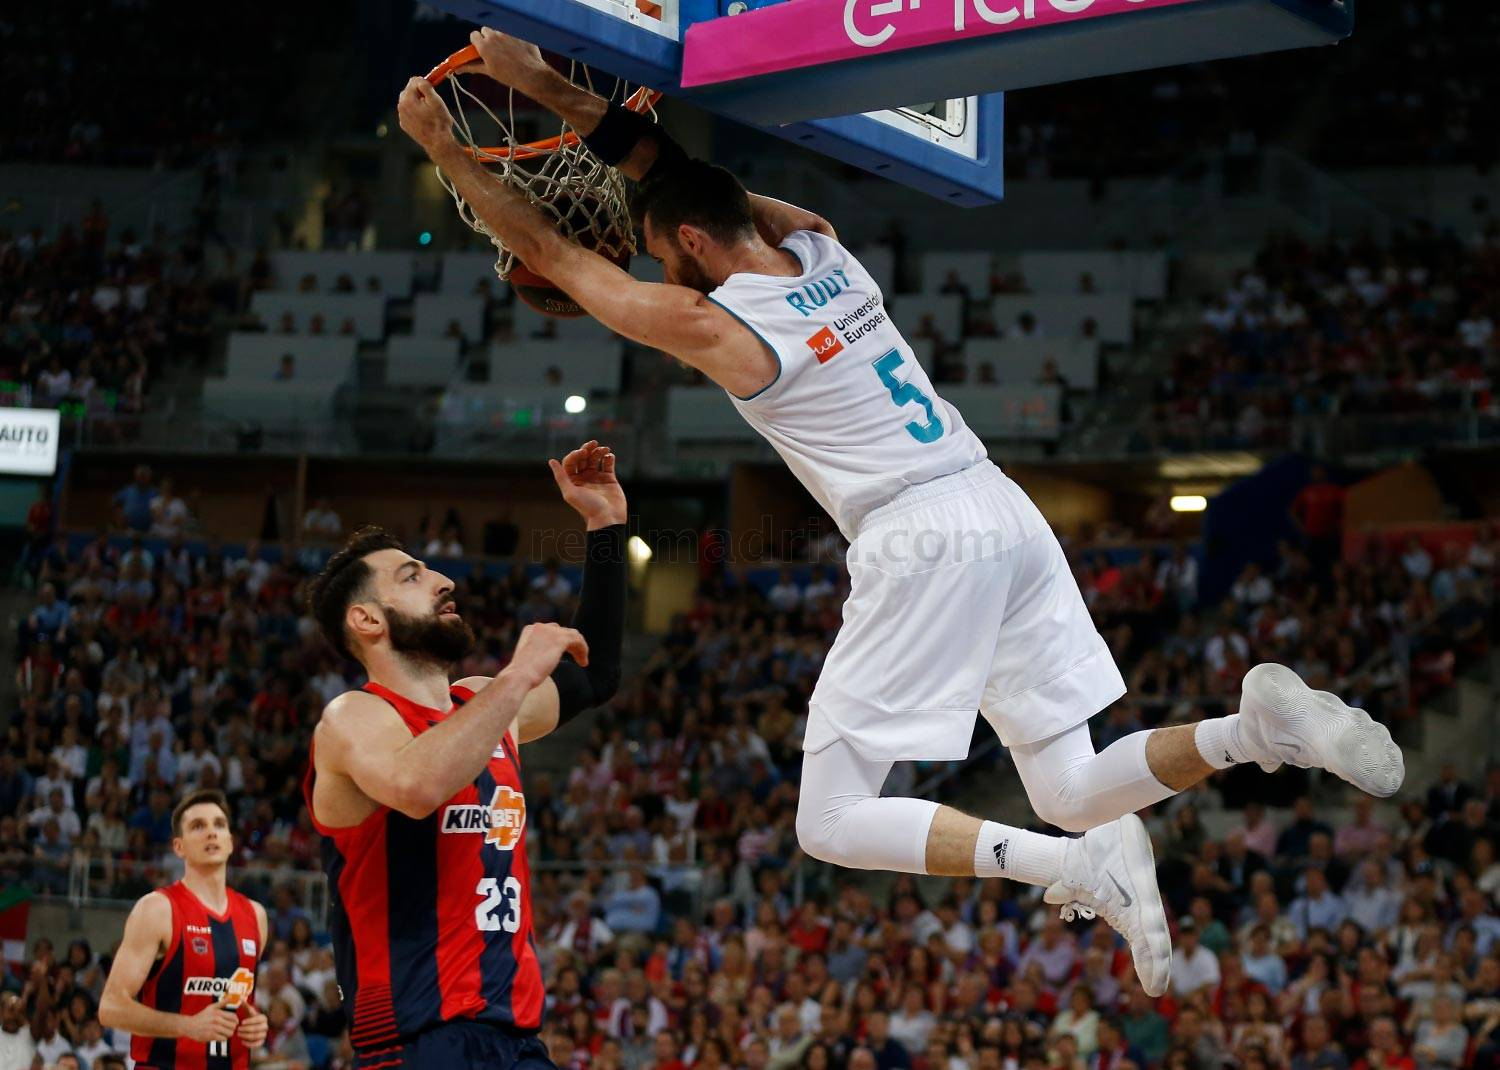 Real Madrid - Kirolbet Baskonia - Real Madrid  - 17-06-2018